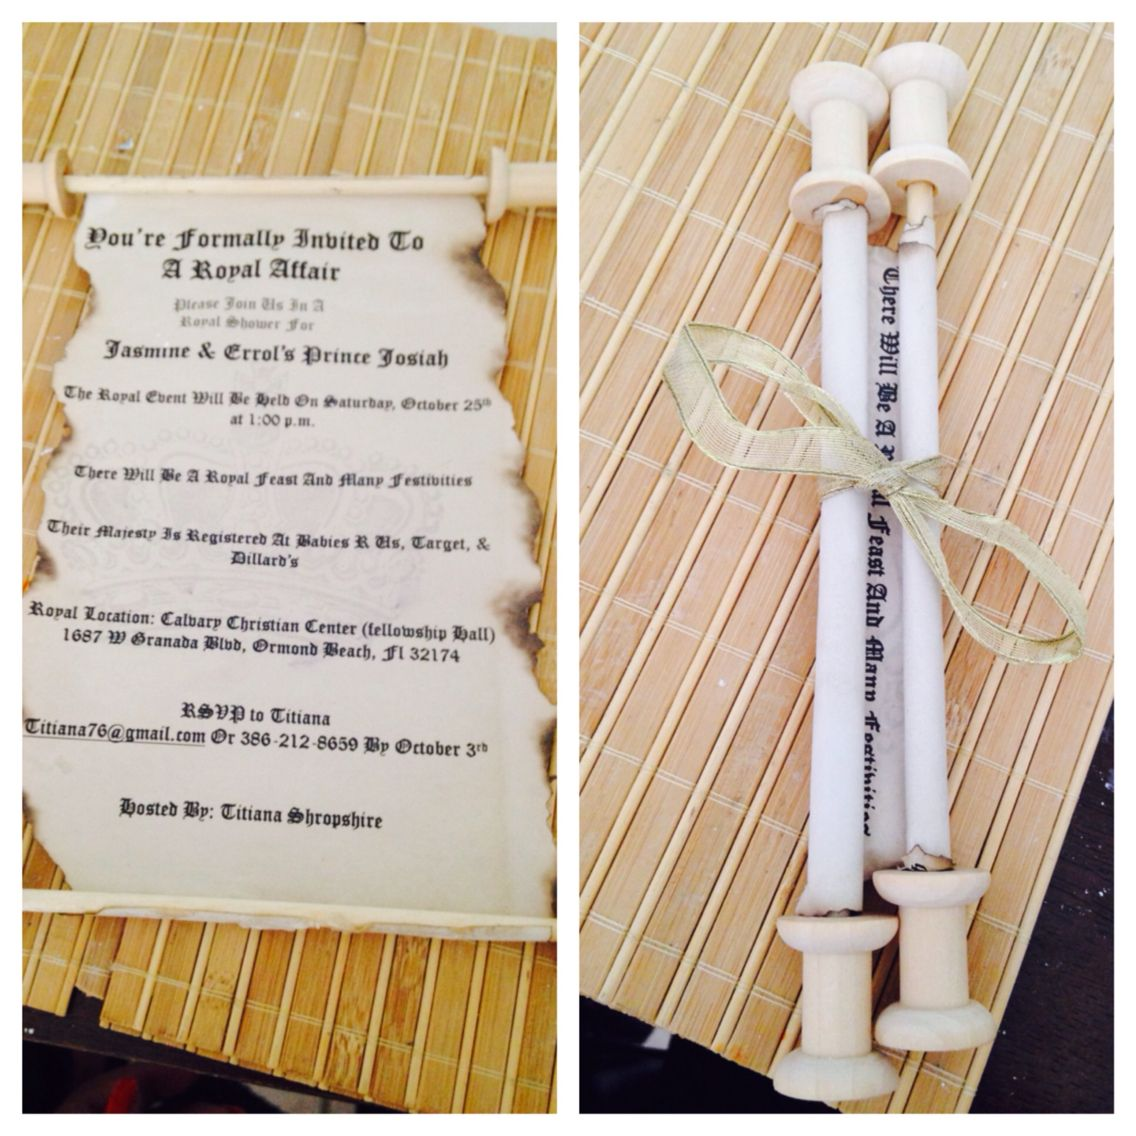 Prince baby shower scroll invites from scratch created by my mother ...